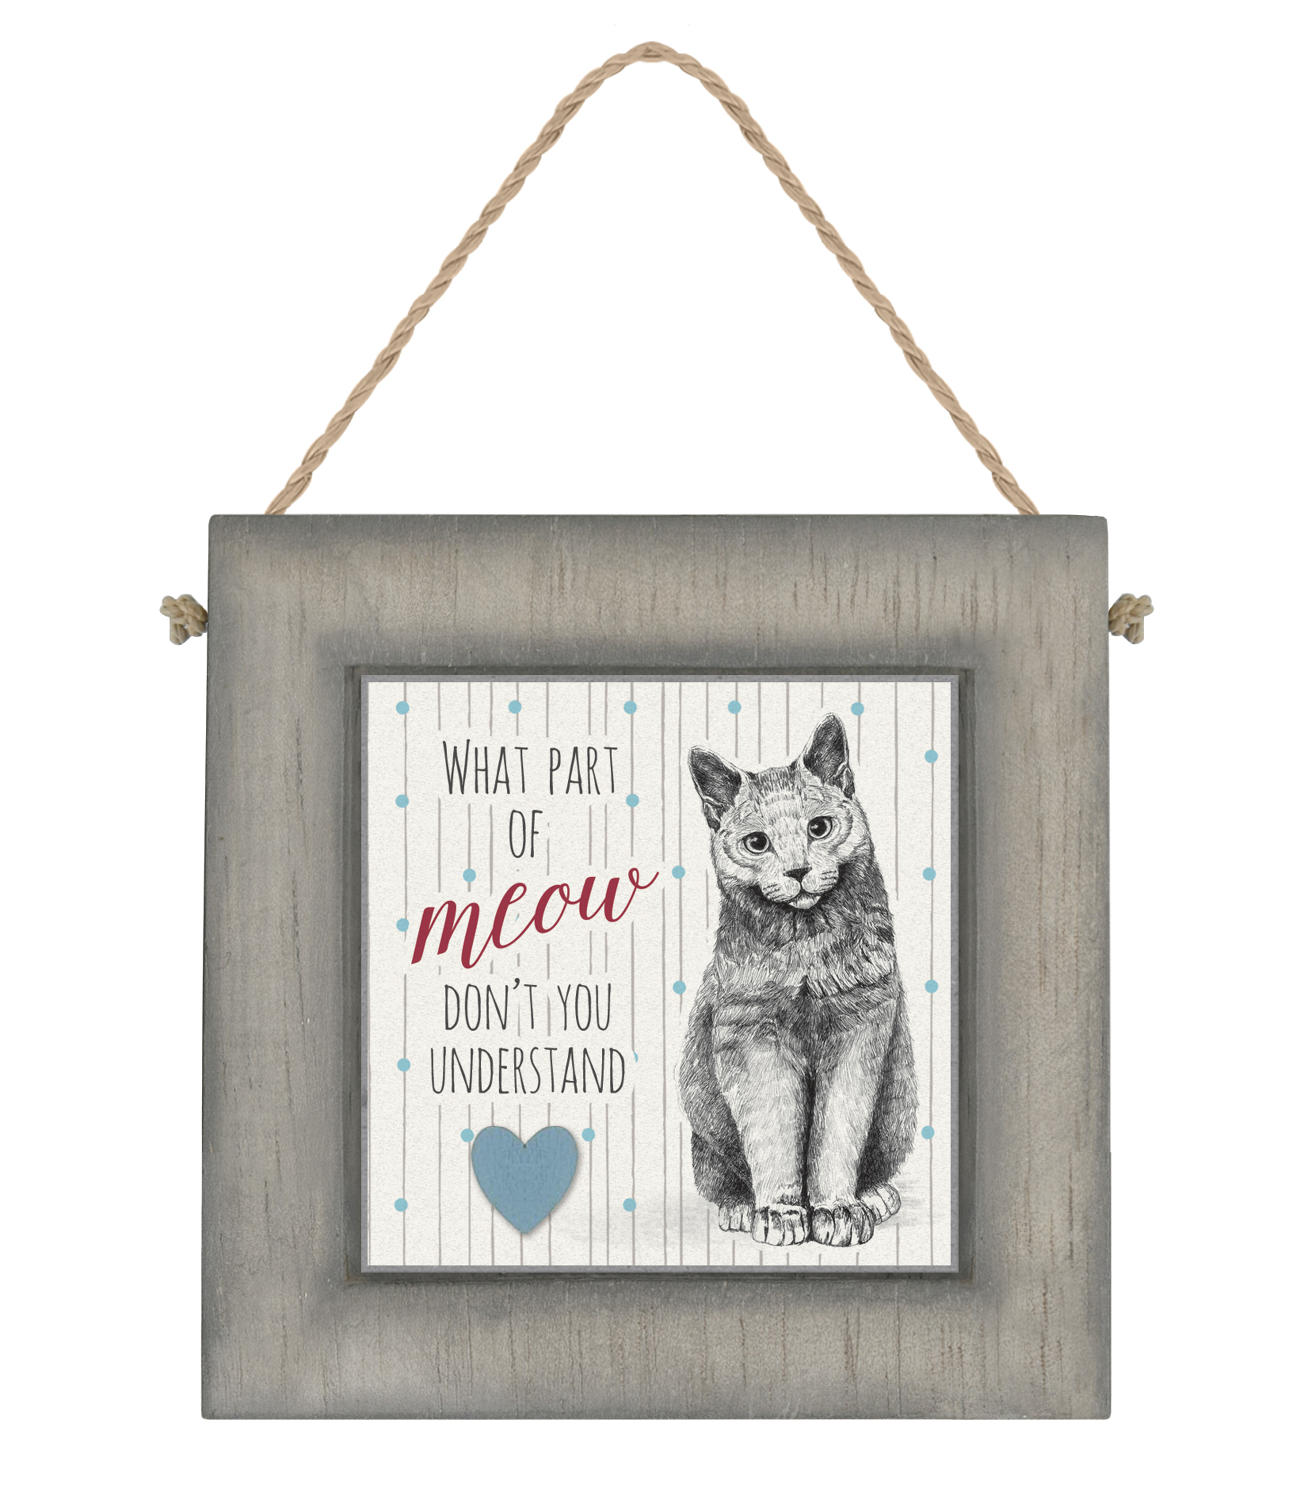 What Part of Meow Picture